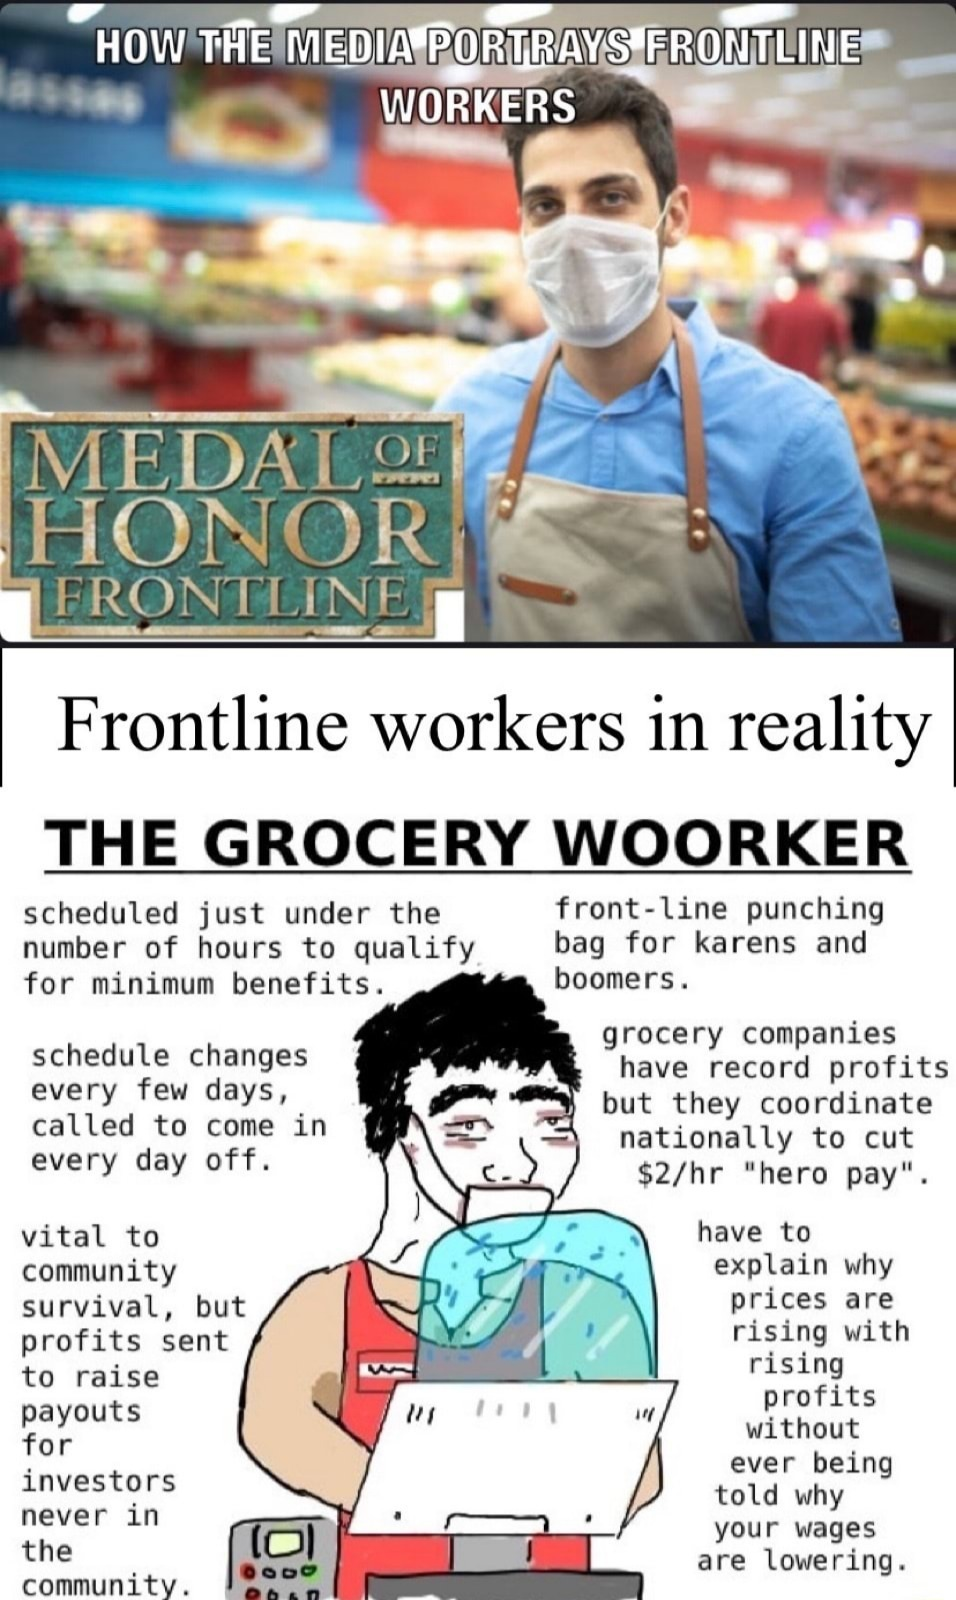 Not just limited to grocery workers - meme